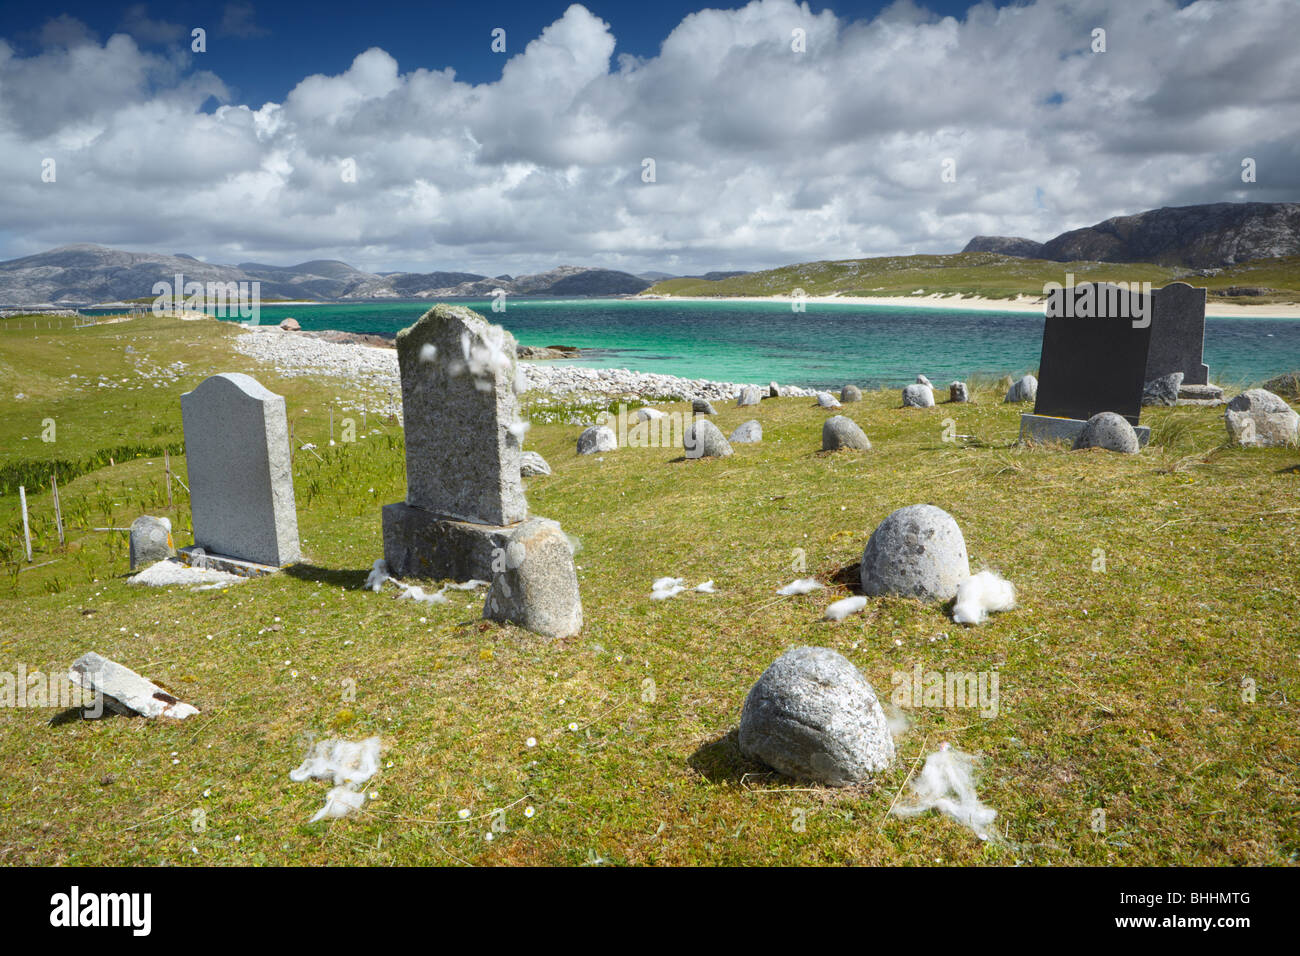 The graveyard on the depopulated island of Scarp in the Western Isles of Scotland - Stock Image